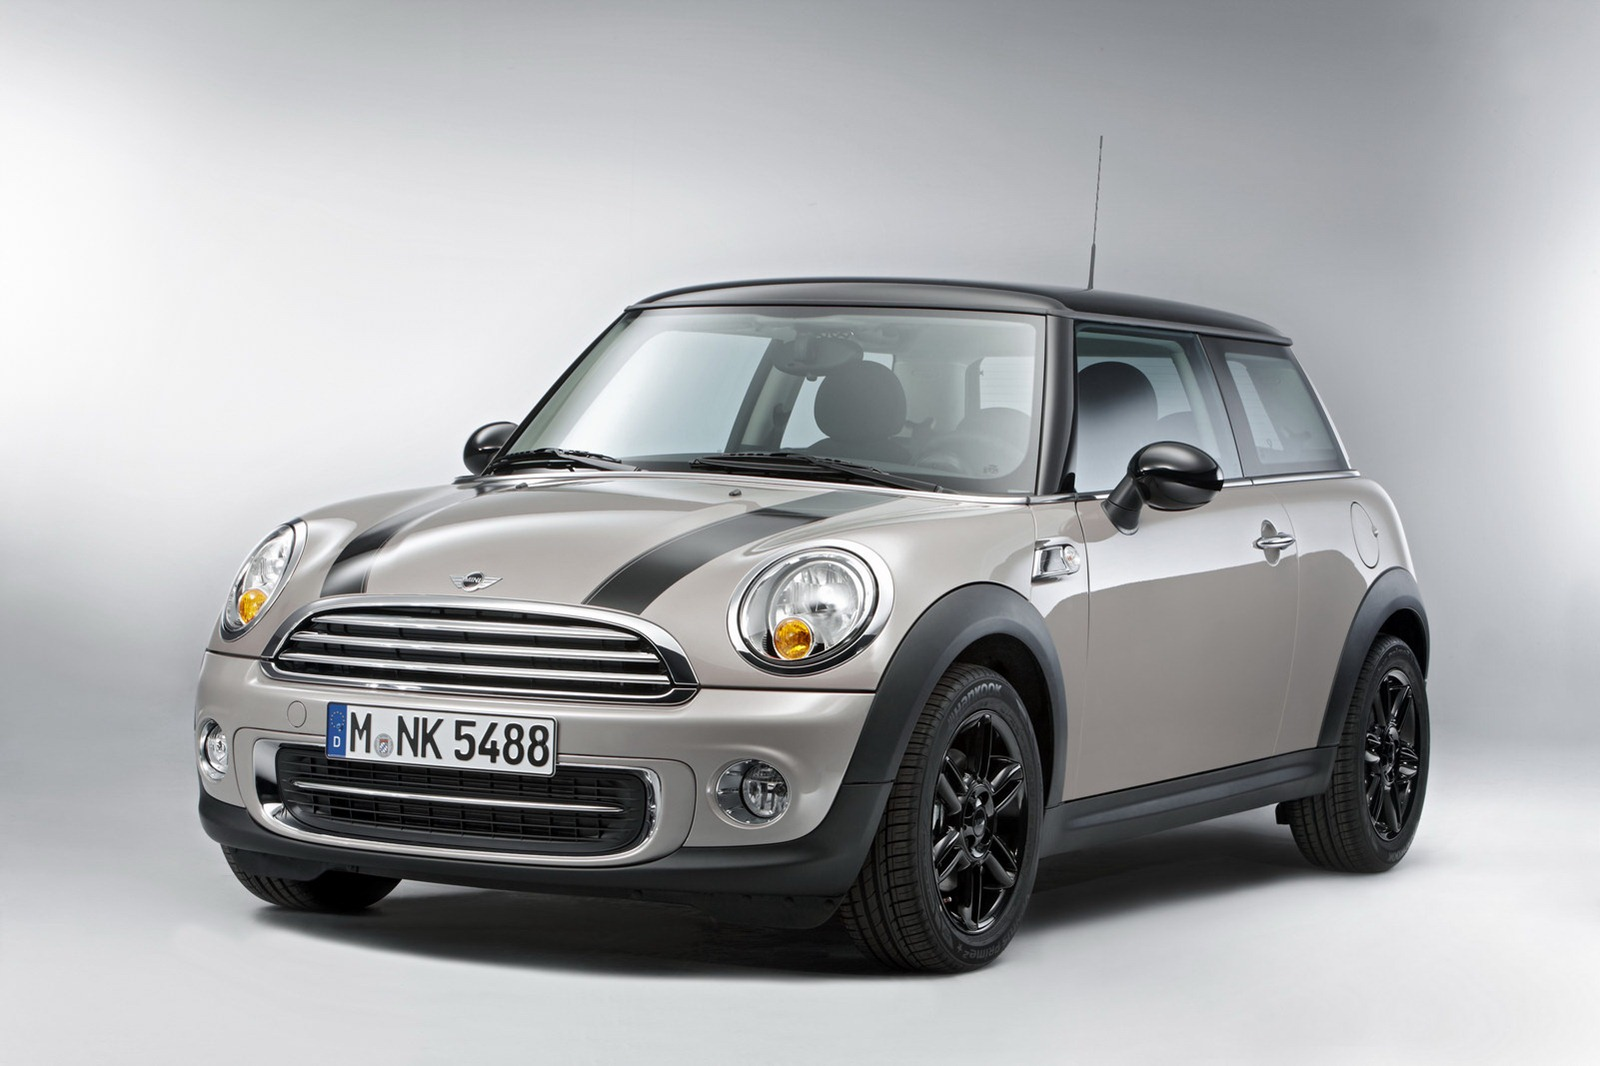 2012 mini cooper baker street special edition top speed. Black Bedroom Furniture Sets. Home Design Ideas